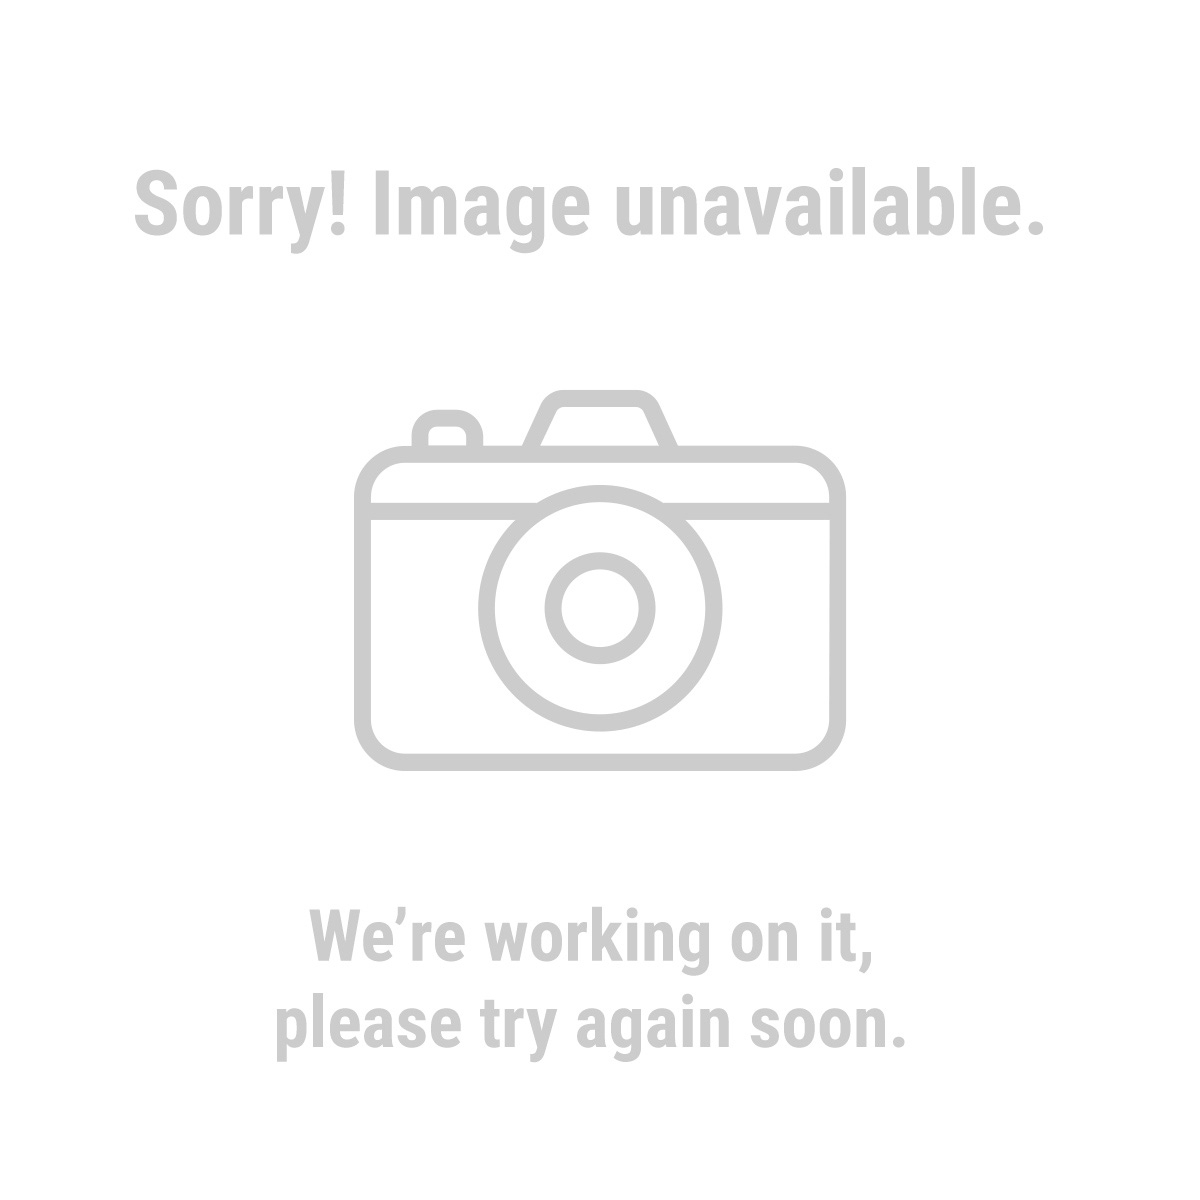 Badland 12000 l winch : Haberdash chicago on